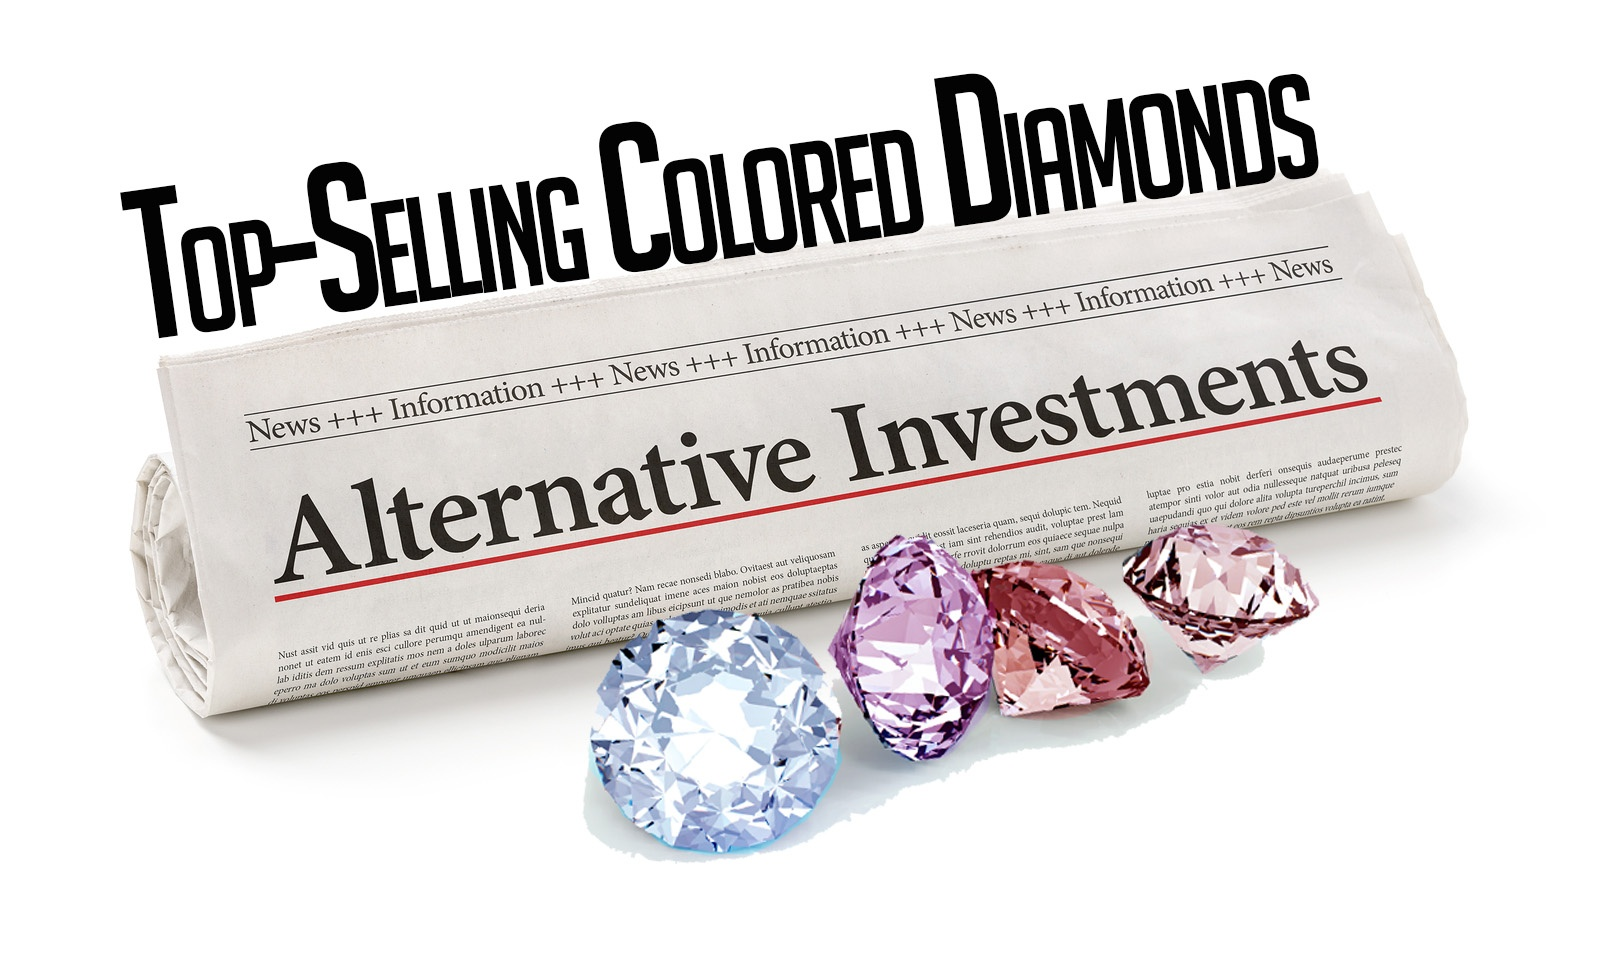 alternative investments colored diamonds.jpg